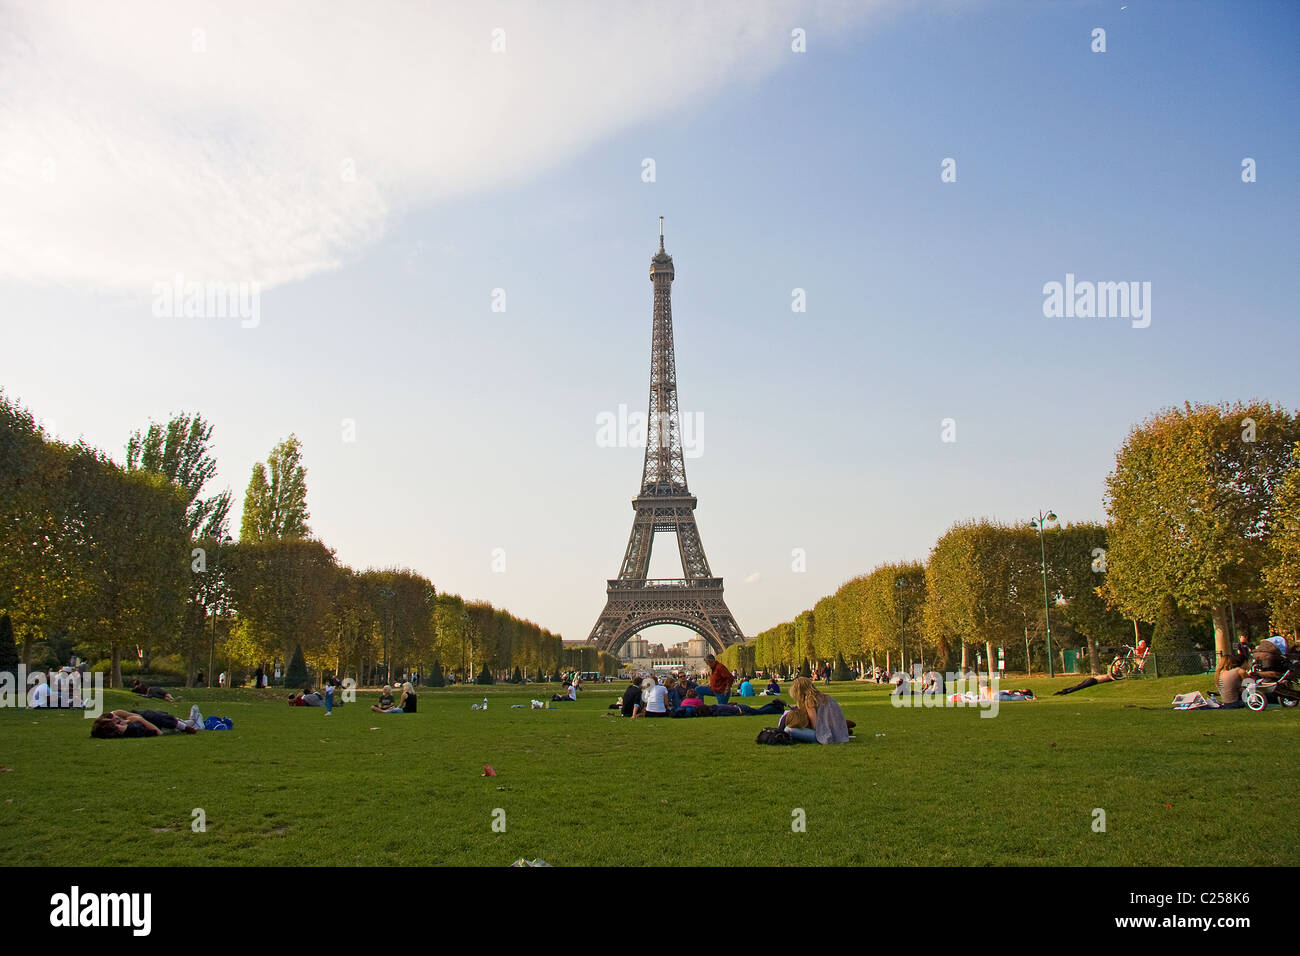 Parisians relax in the Parc du Champ de Mars, with the Eiffel Tower beyond - Stock Image